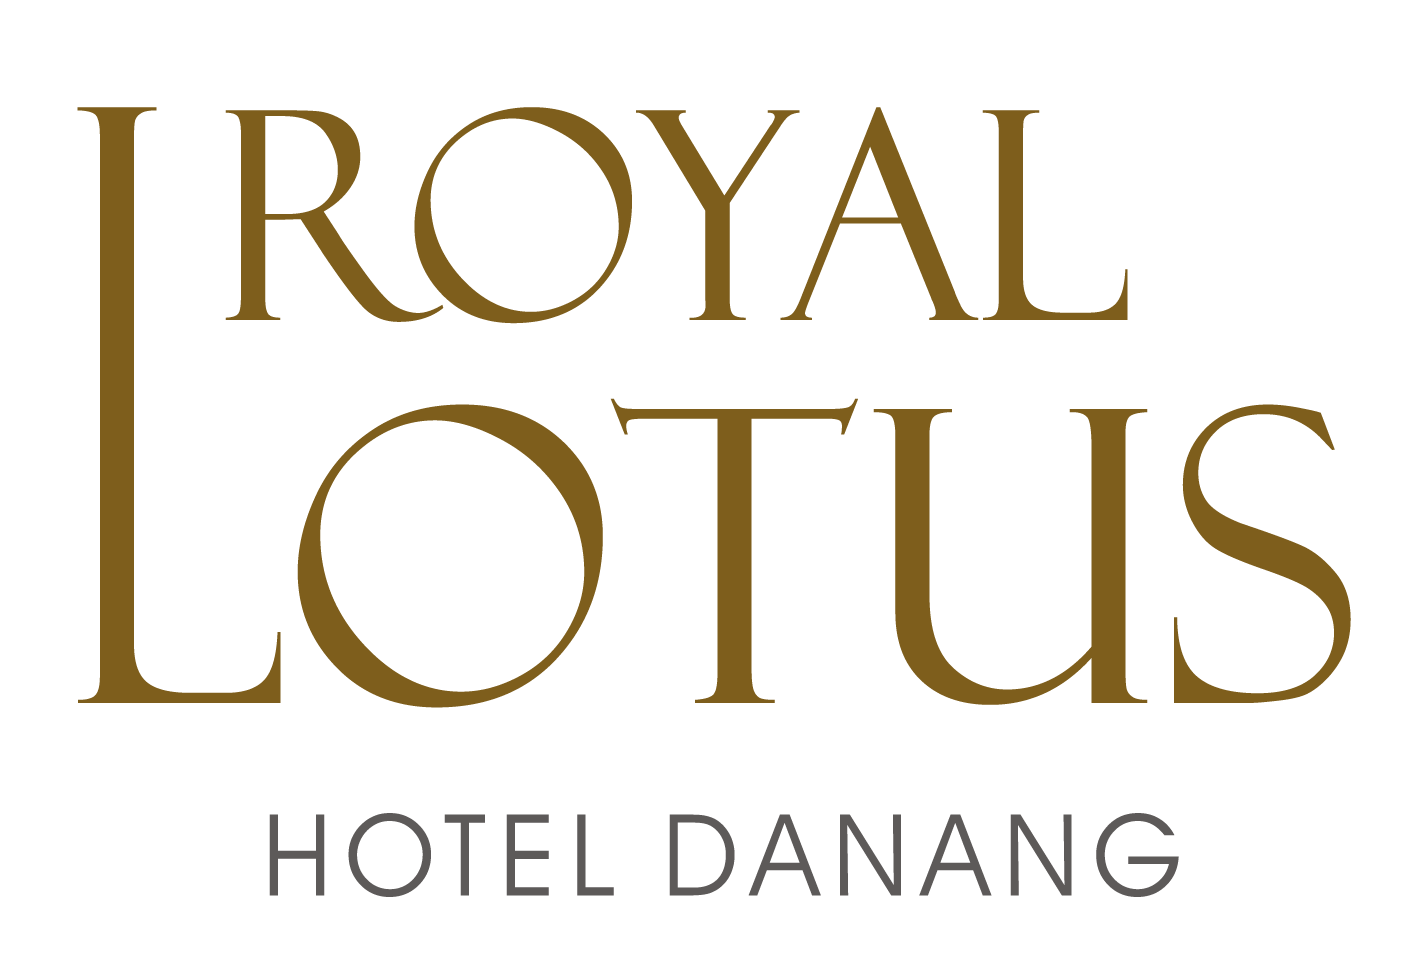 Royal Lotus Hotel Danang managed by H&K hospitality